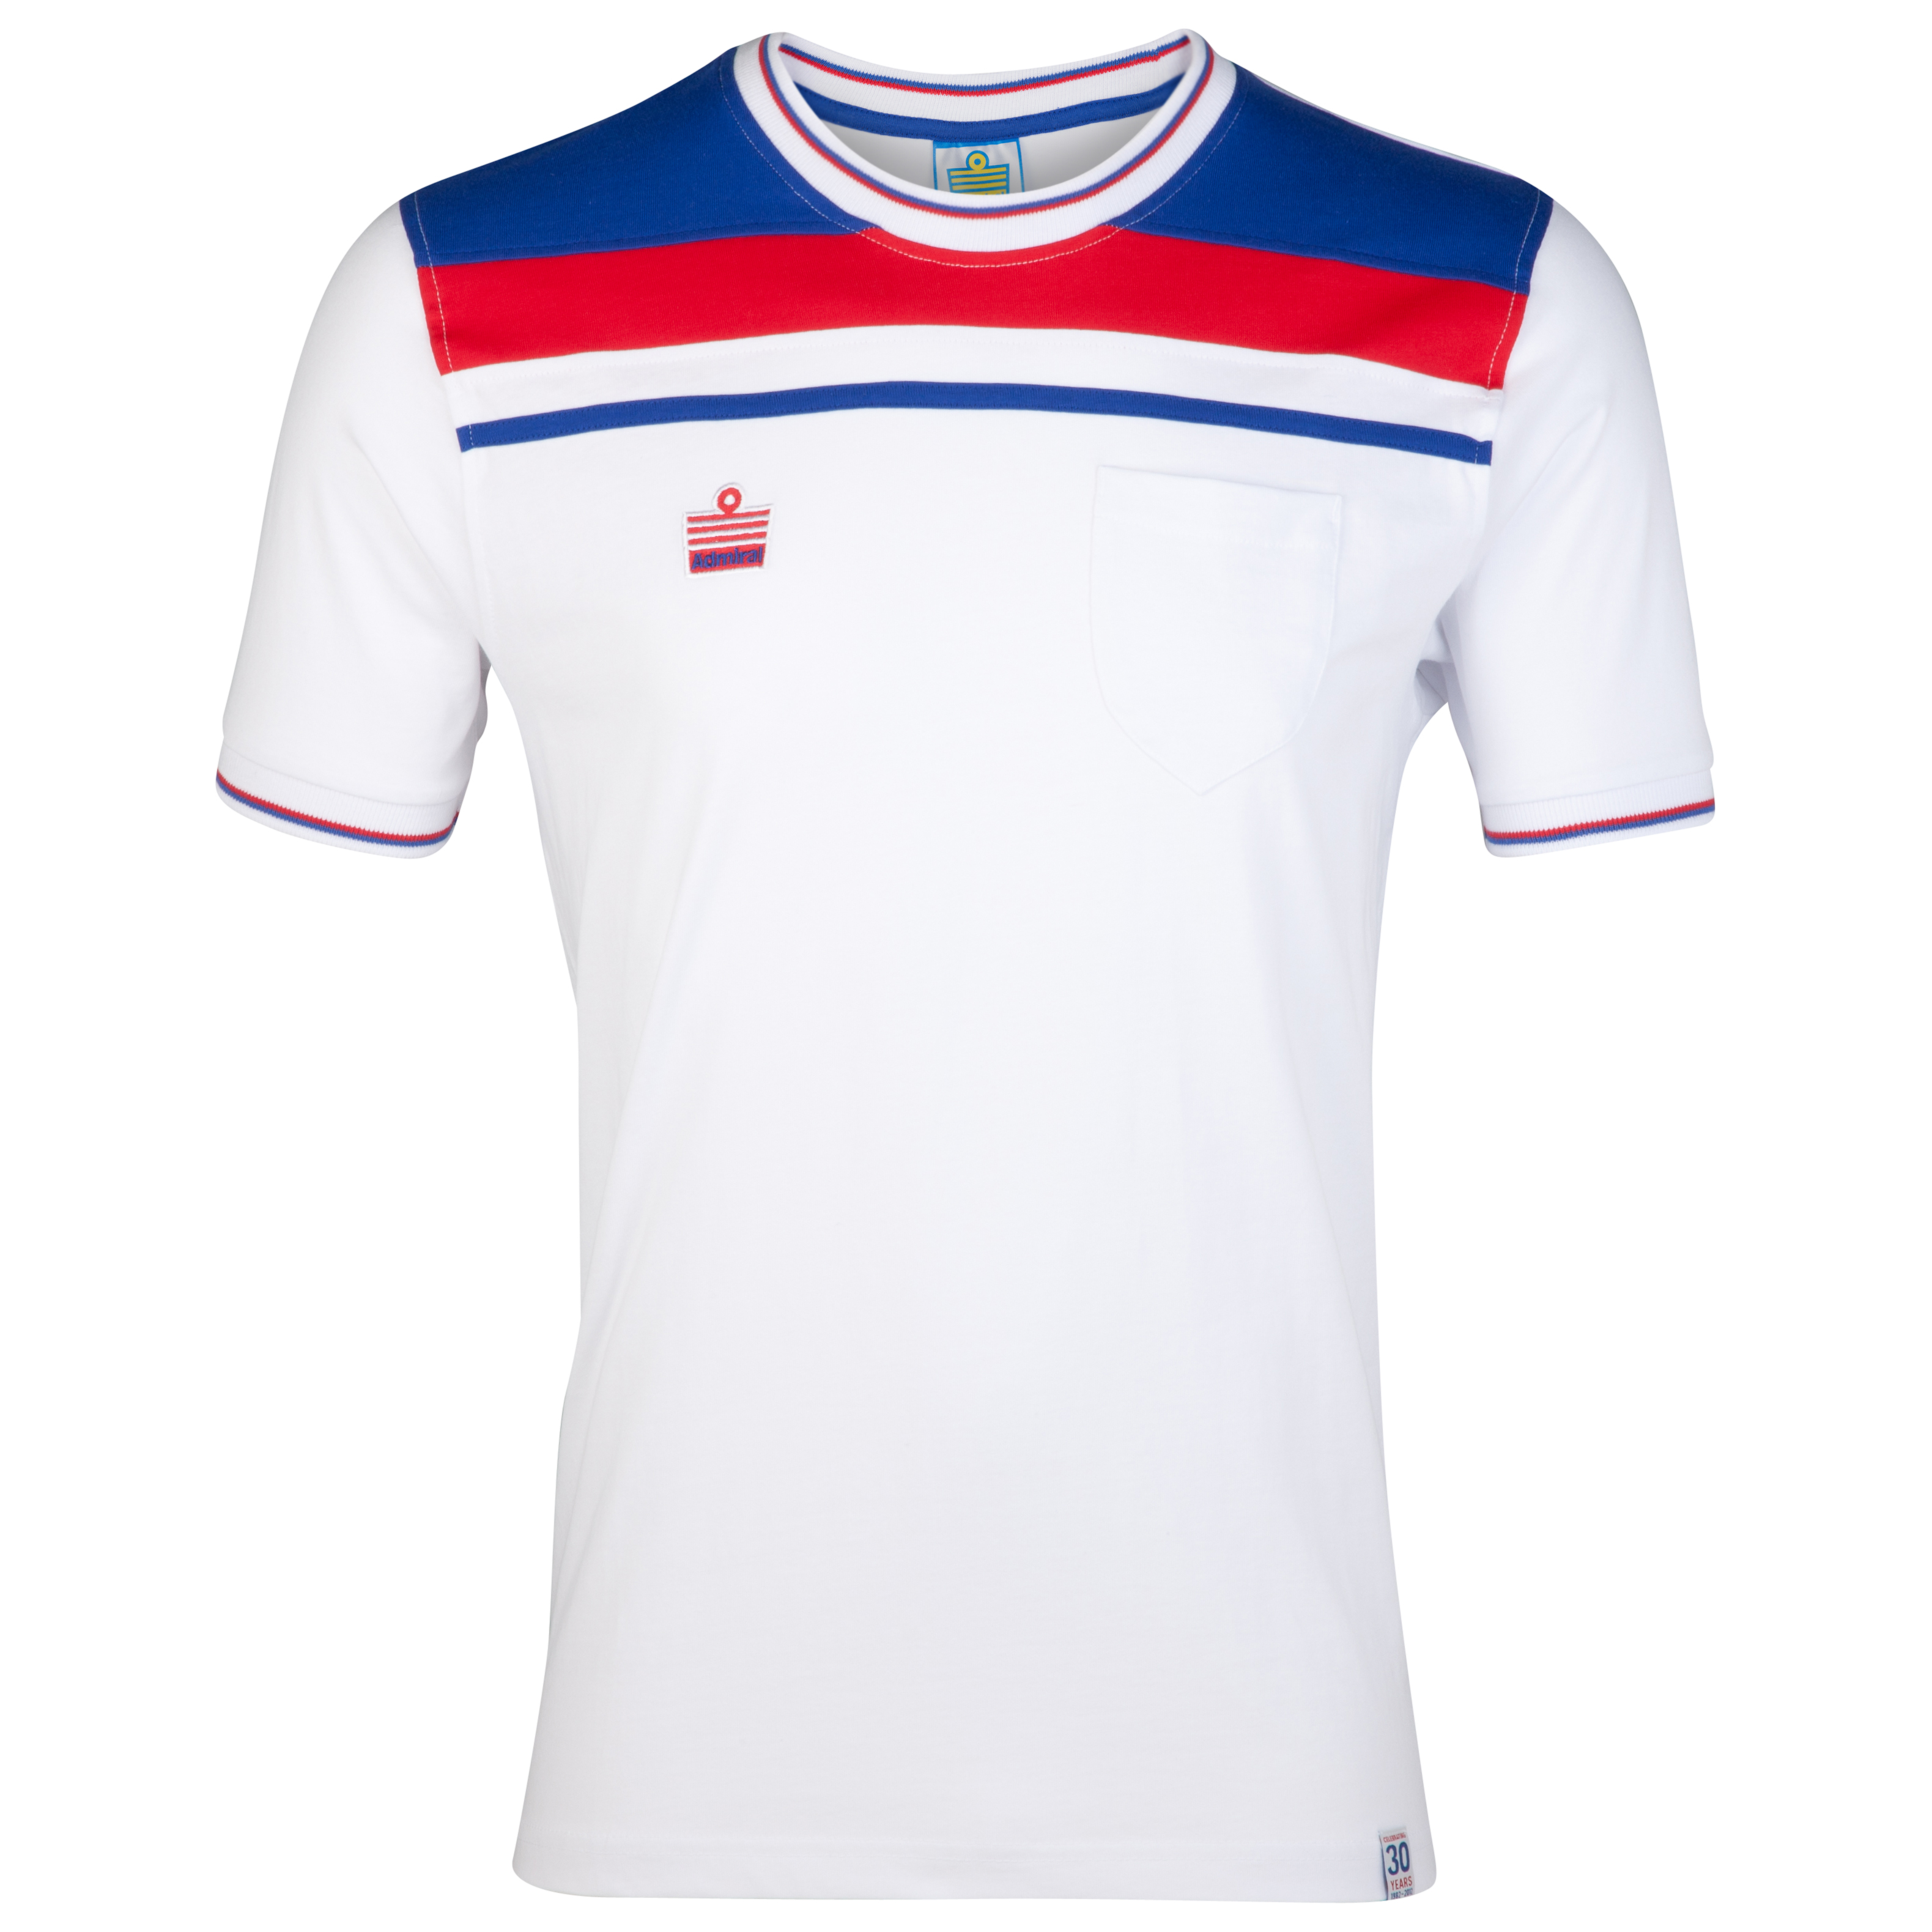 Admiral 1982 England Home T-Shirt - White